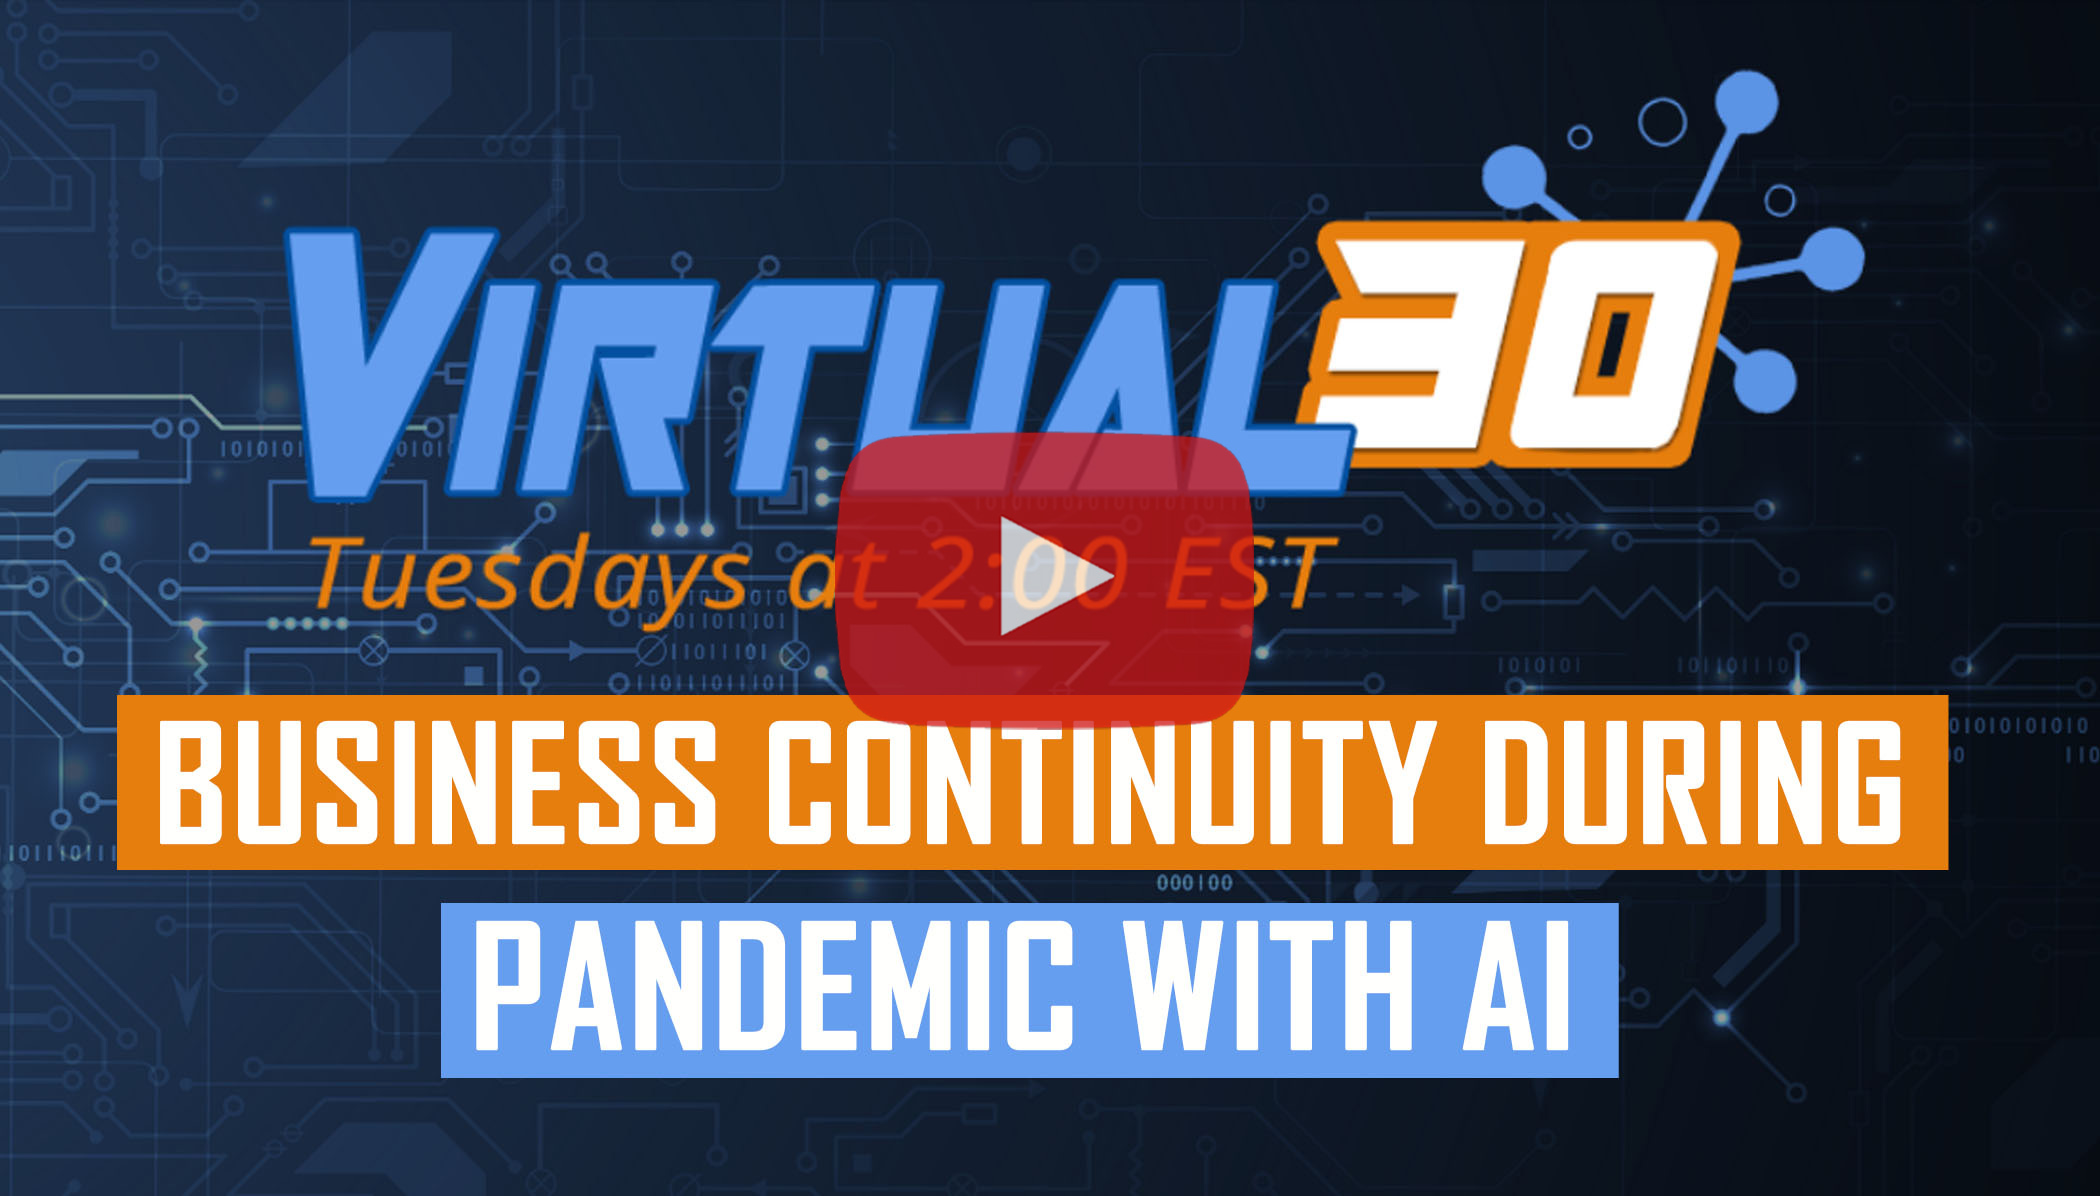 Business Continuity in a Pandemic